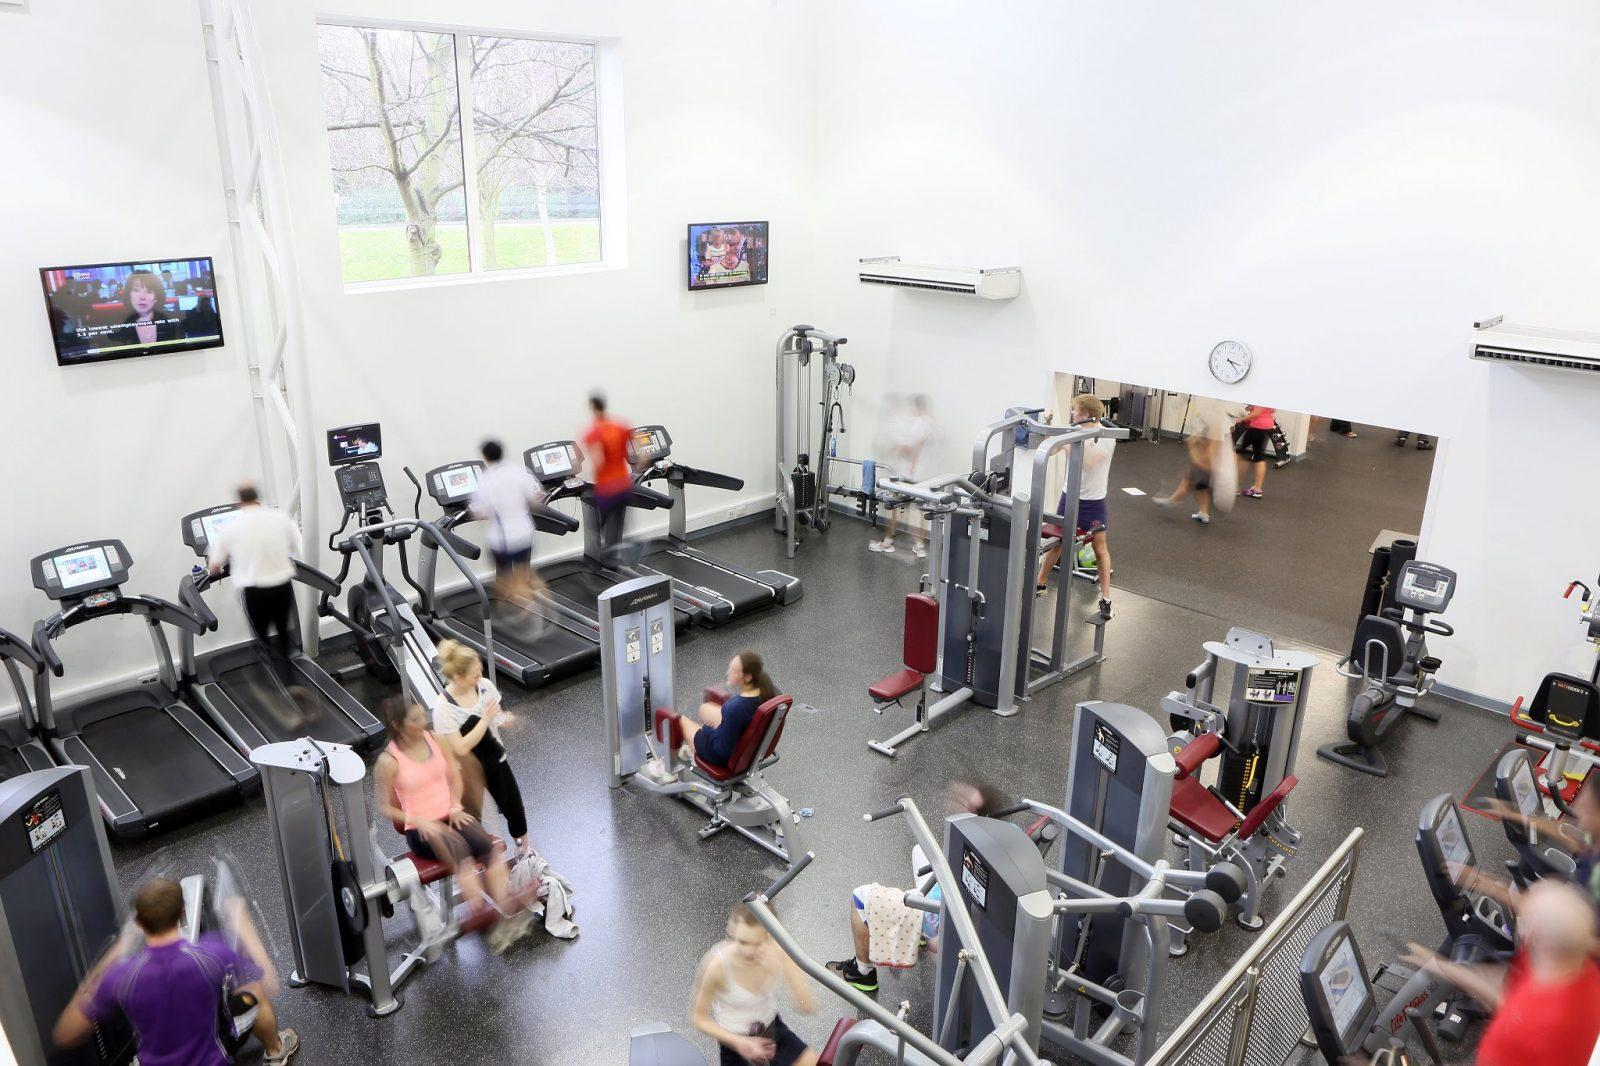 The Gym at Loughborough Leisure Centre